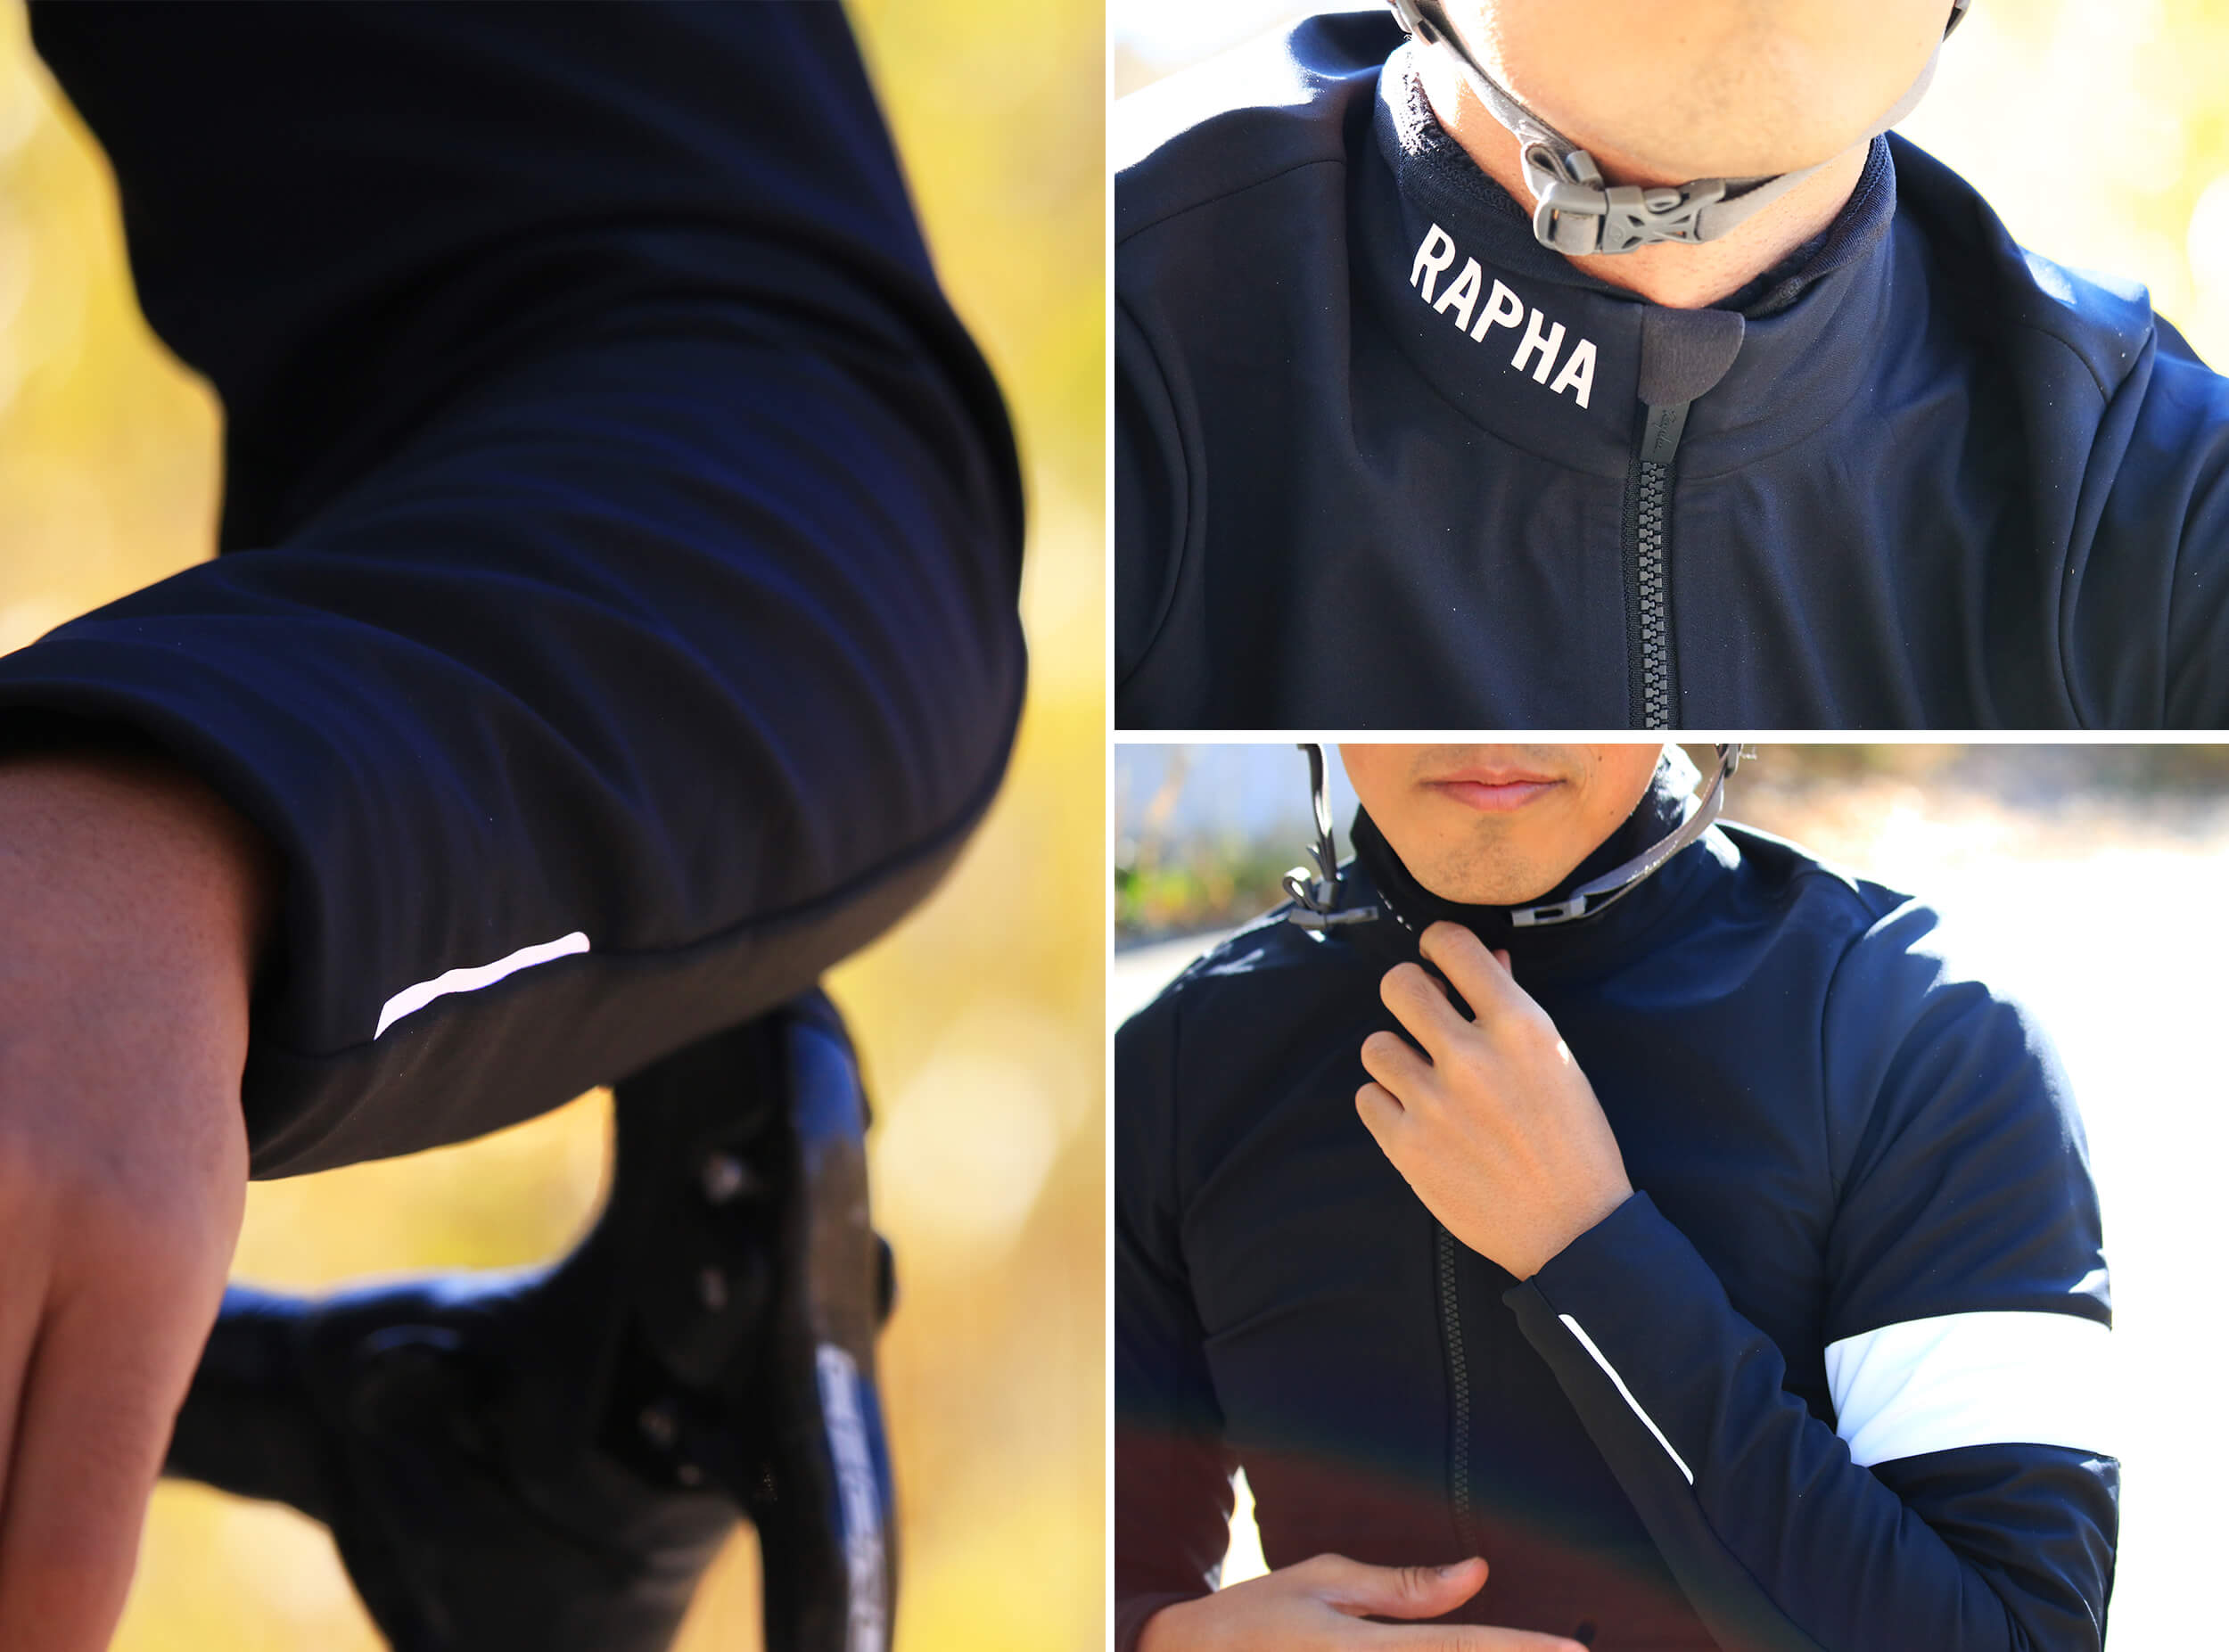 Rapha Pro Team Tracking Cycling Jacket - Contender Bicycles